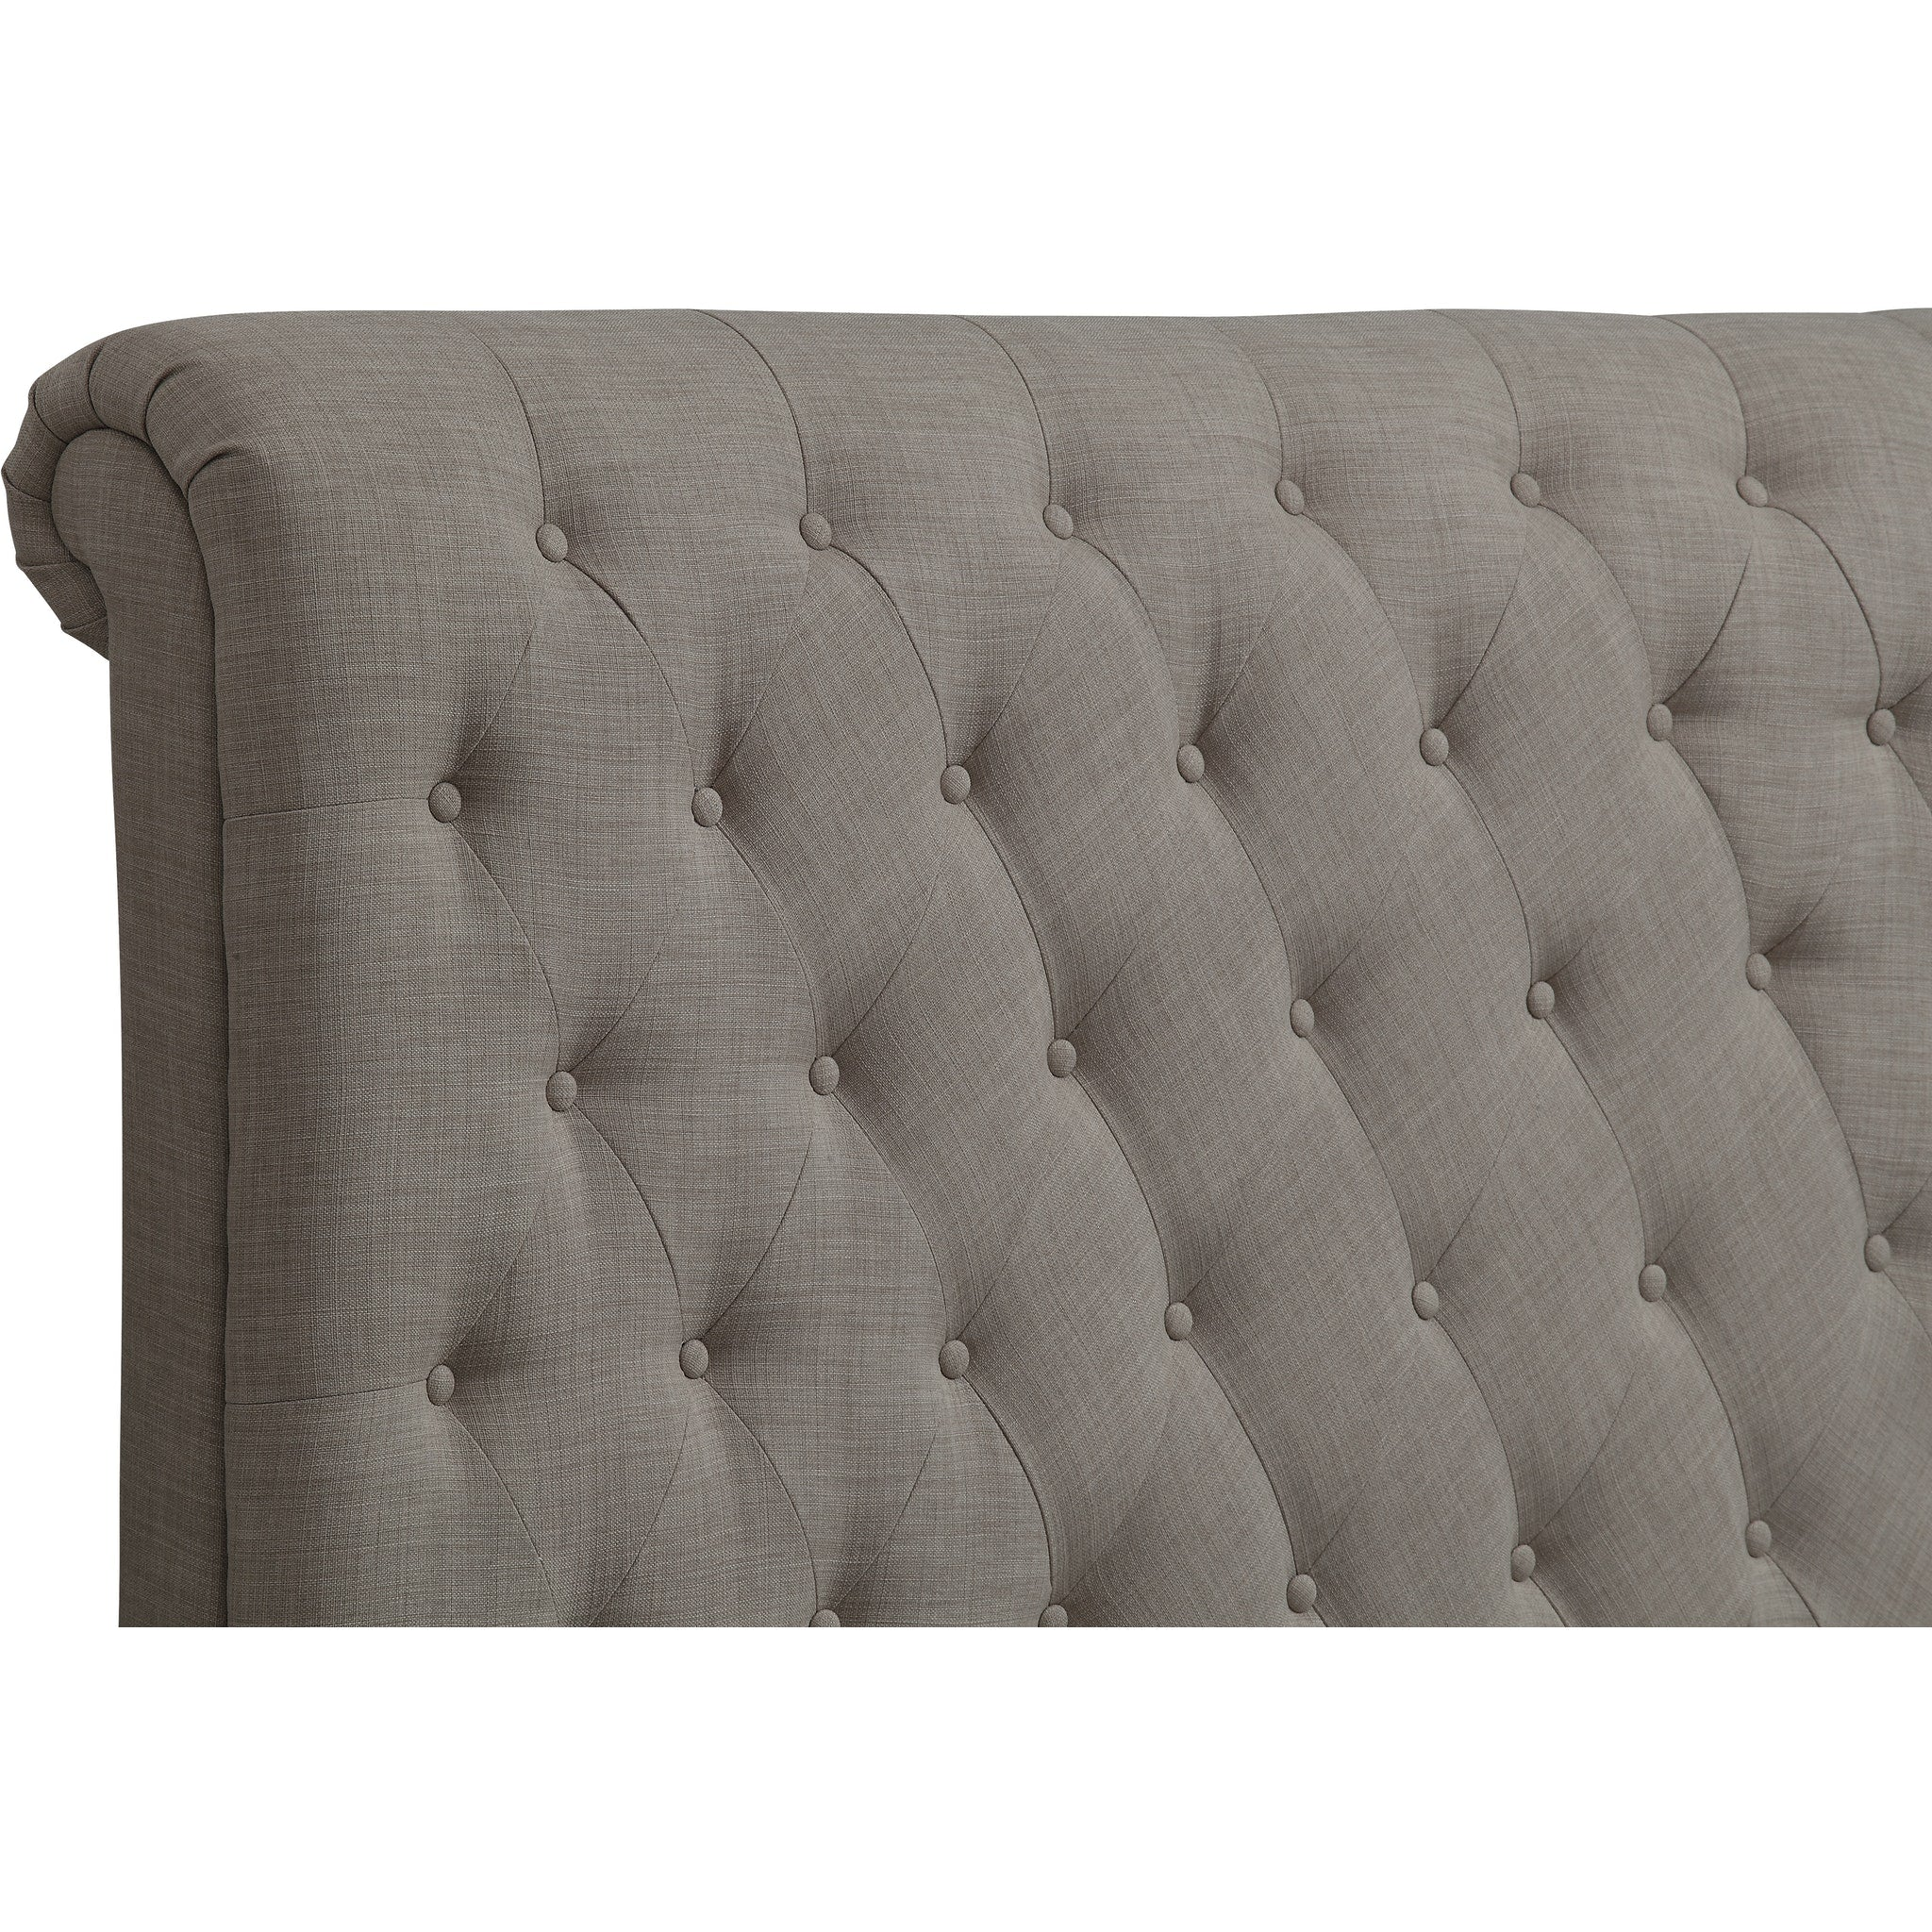 Royal Queen-size Tufted Headboard